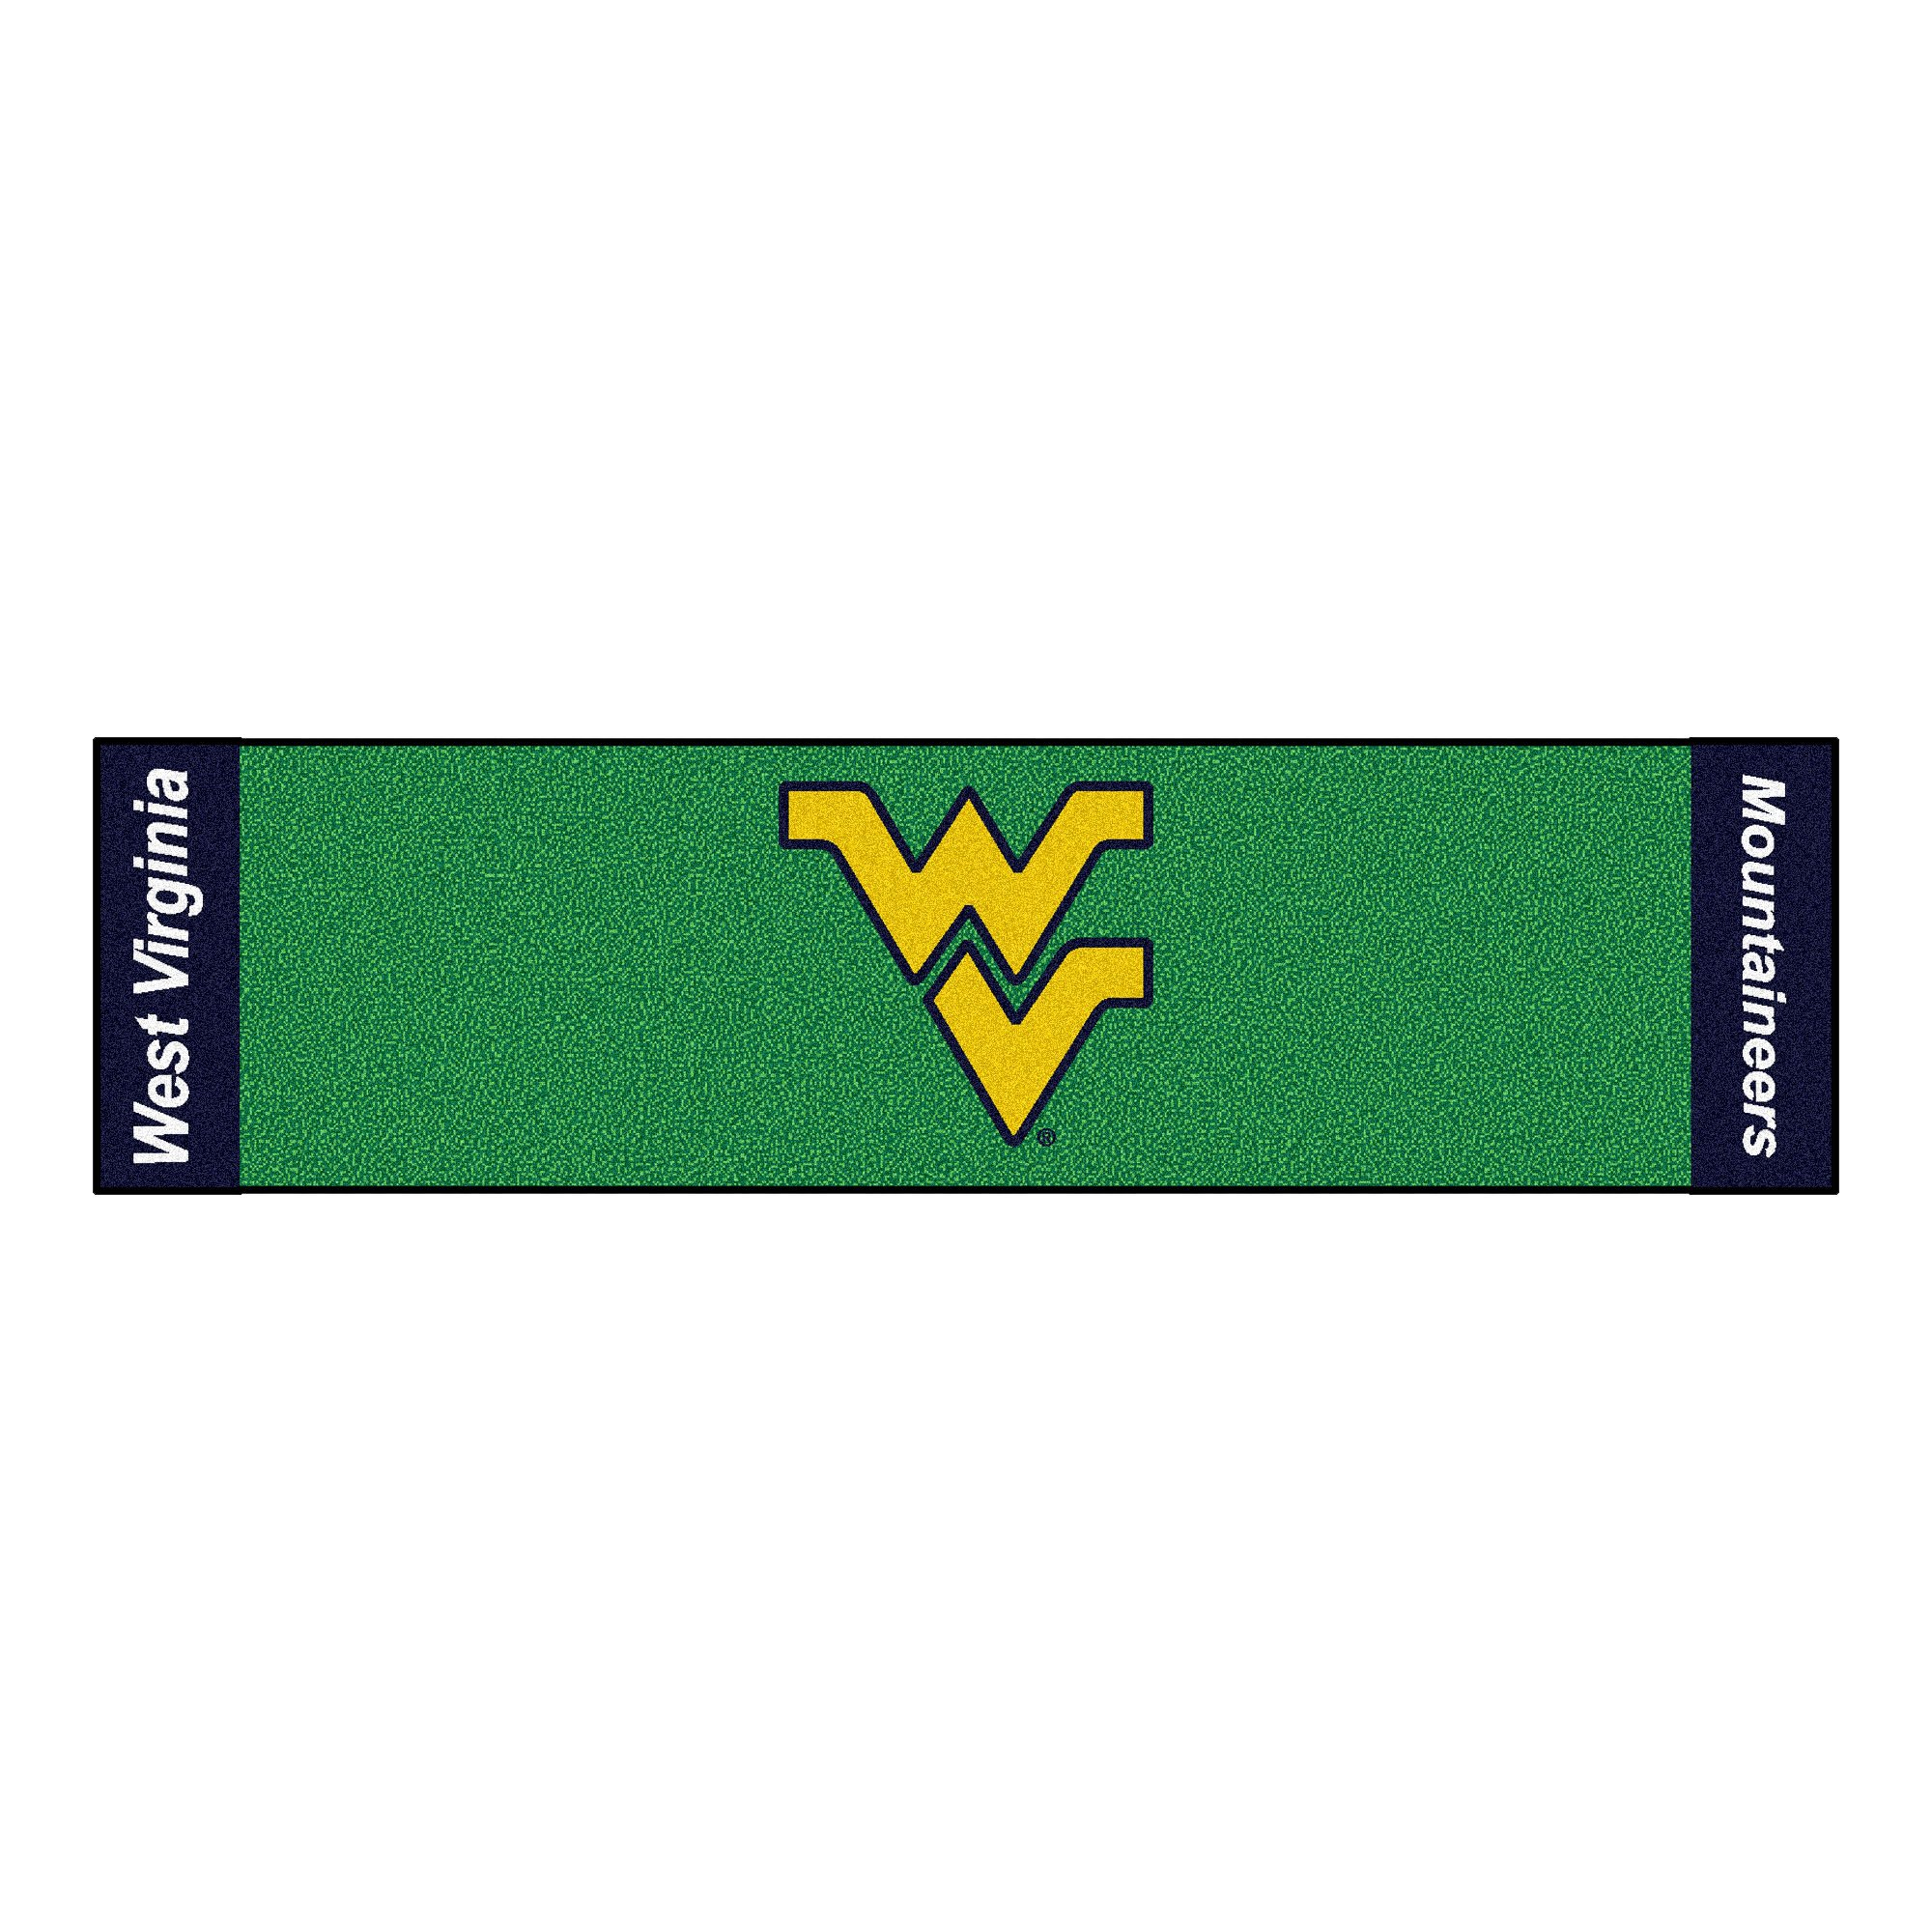 NCAA West Virginia University Mountaineers Putting Green Mat Golf Accessory by Unknown (Image #1)